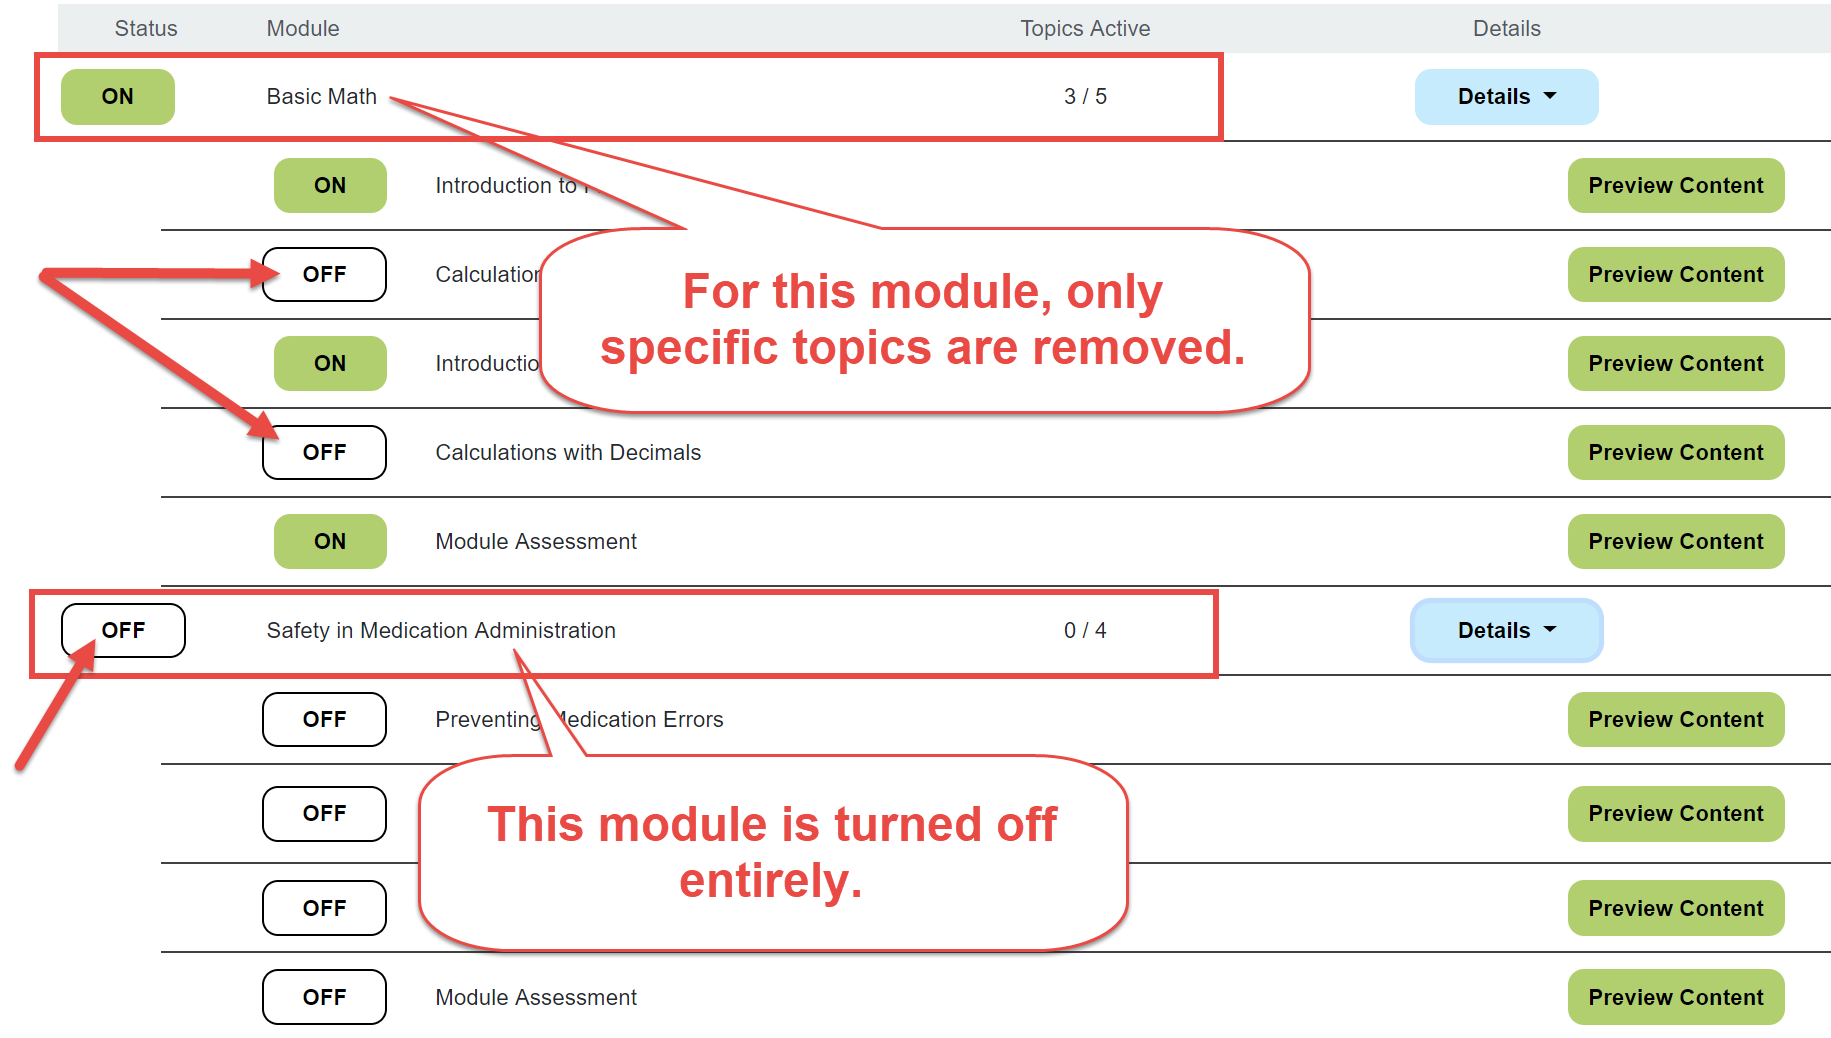 Screenshot of Assignments in Dosage Calc 460 with a red box and speech bubble for one topic. The speech bubble says: For this module, only specific topics are removed. There are red arrows pointing to two subtopics that have been turned off. There is a red box around a topic that has been turned off entirely with a red arrow pointing to the Off button next to that topic. There is a speech bubble coming from the topic that says: This module is turned off entirely.